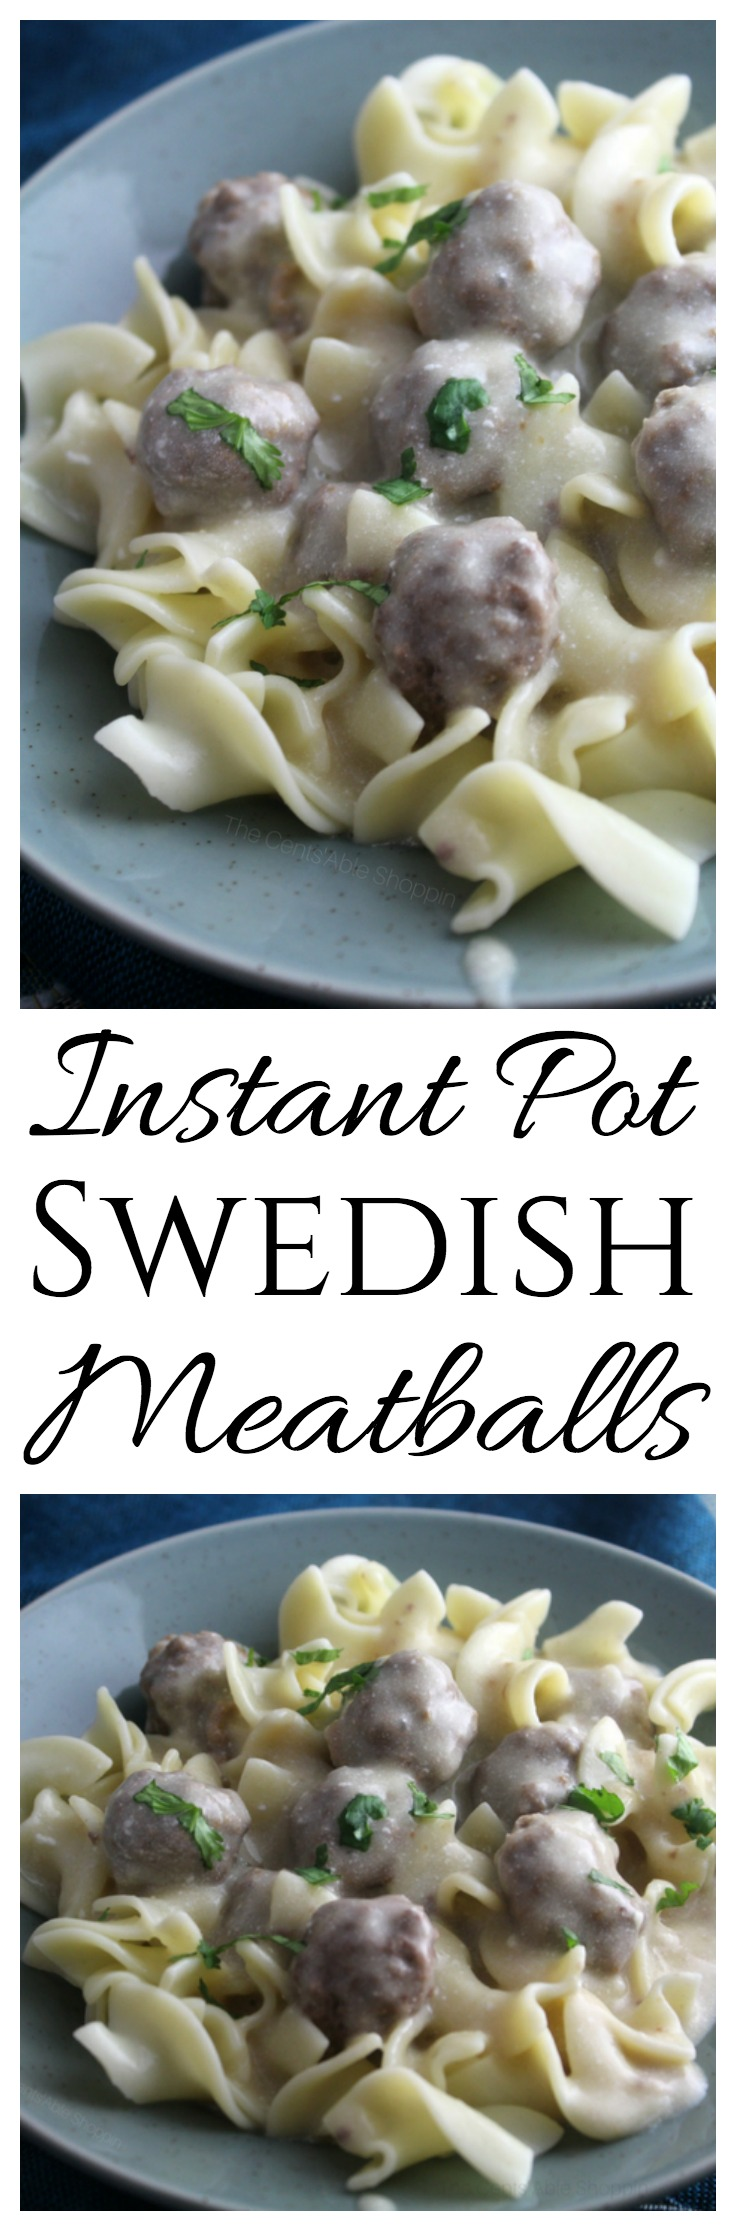 Nothing beats homemade meatballs smothered in a deliciously creamy sauce! This recipe for Swedish Meatballs is a family favorite -- whip it up in minutes using your Instant Pot! #InstantPot #beef #Meatballs